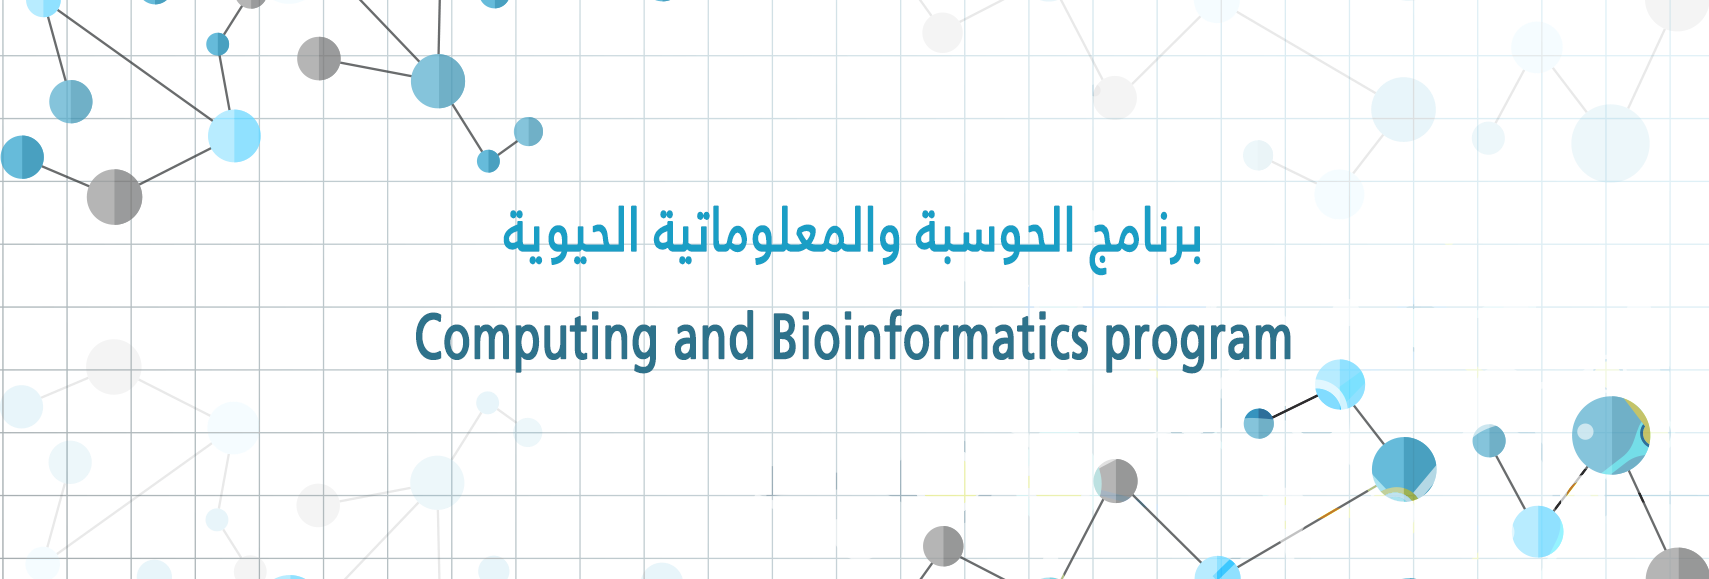 Computing and Bioinformatics program